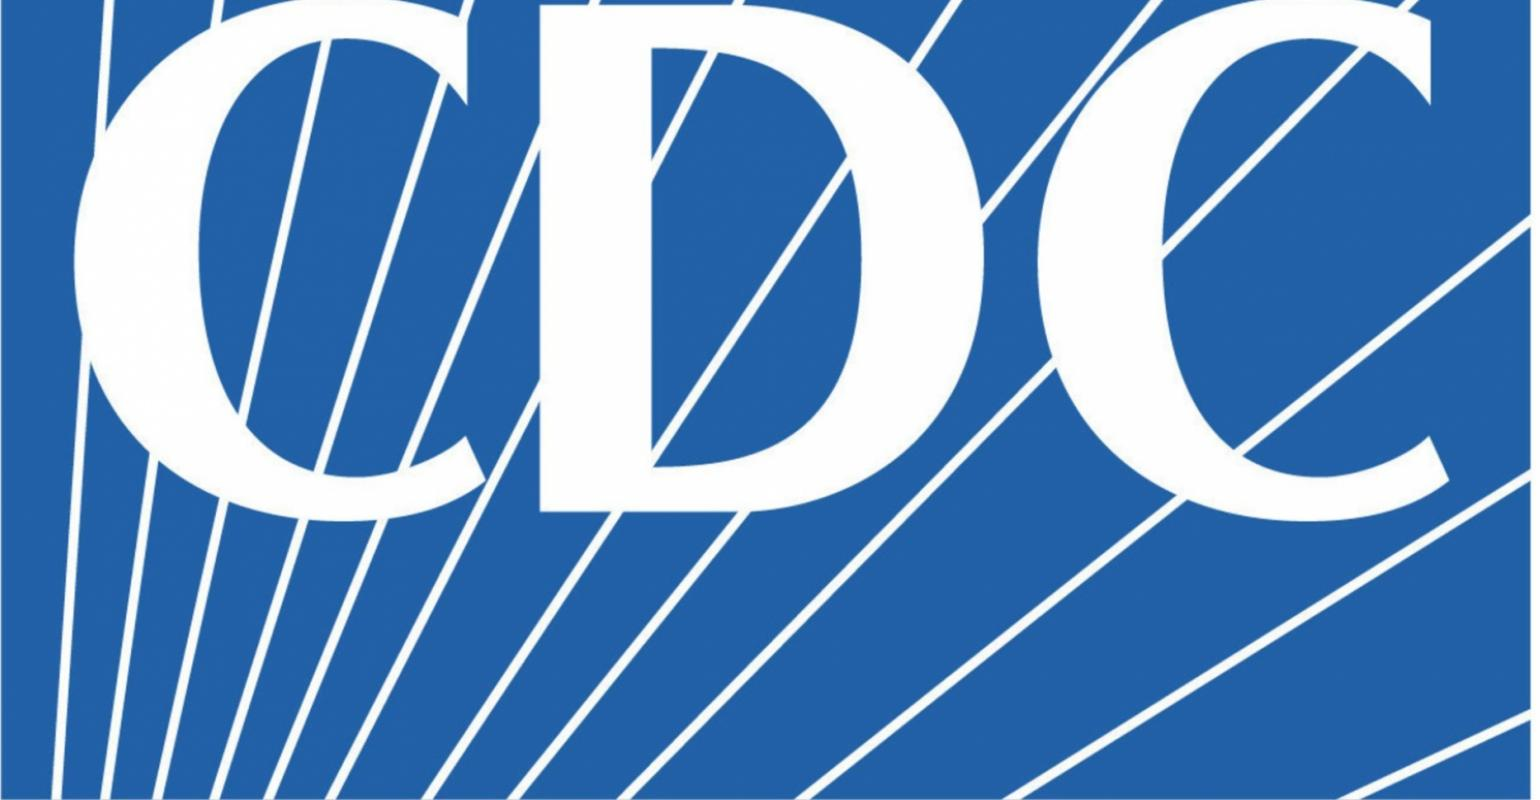 Cdc Issues Technical Instructions For Mitigating Covid 19 Among Crew Seatrade Cruise Com